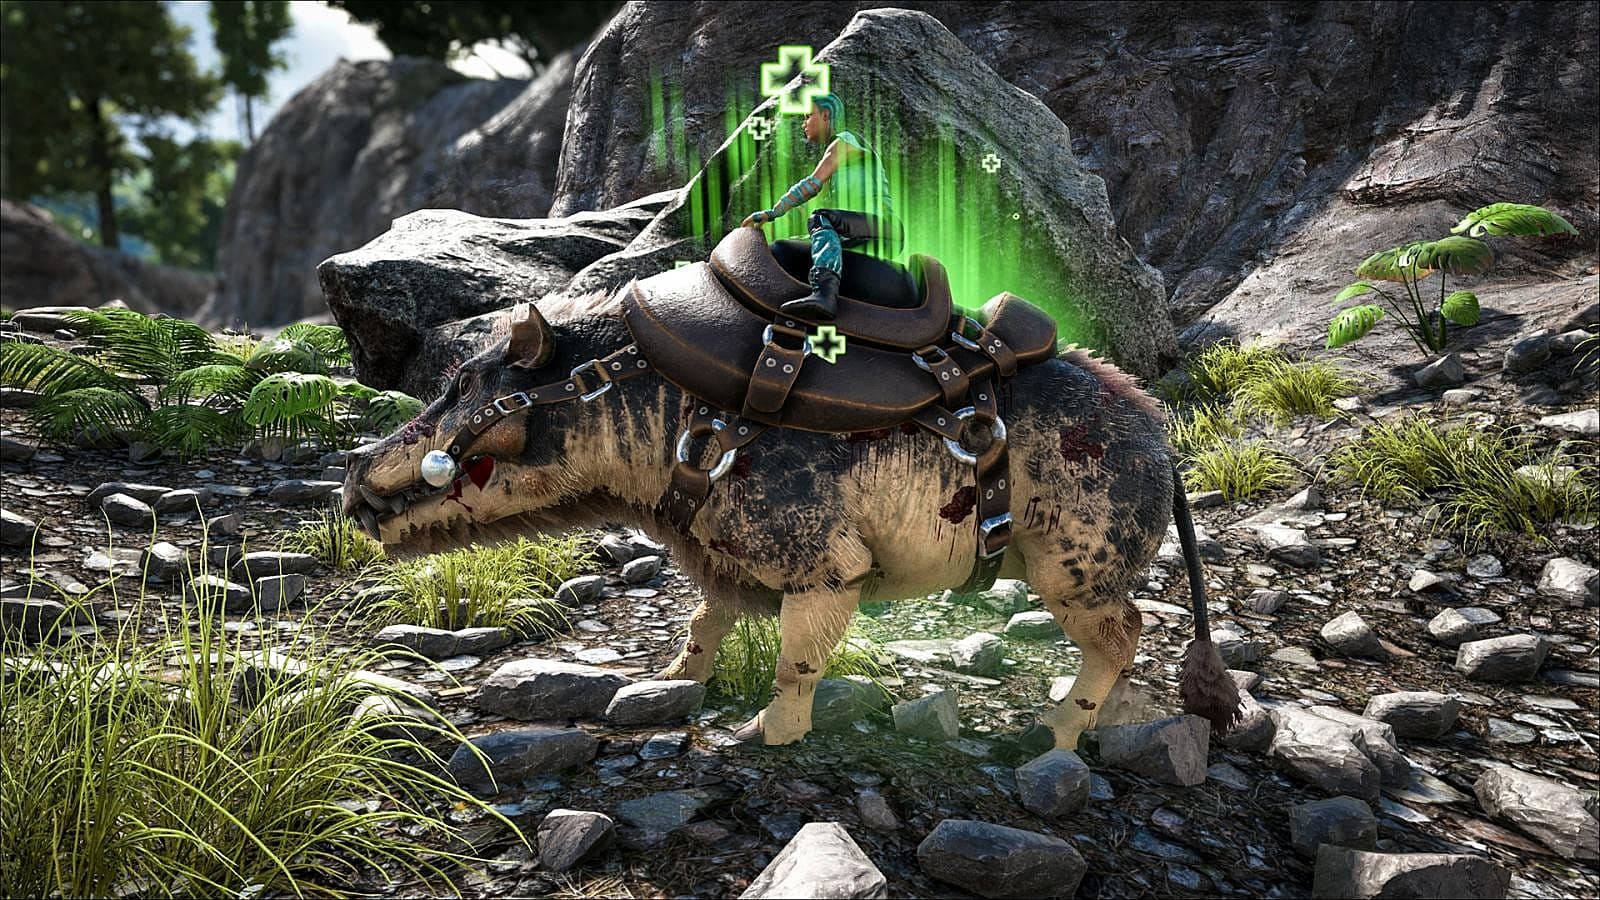 ARK: Survival Evolved Guide - How to Ascend and Find the